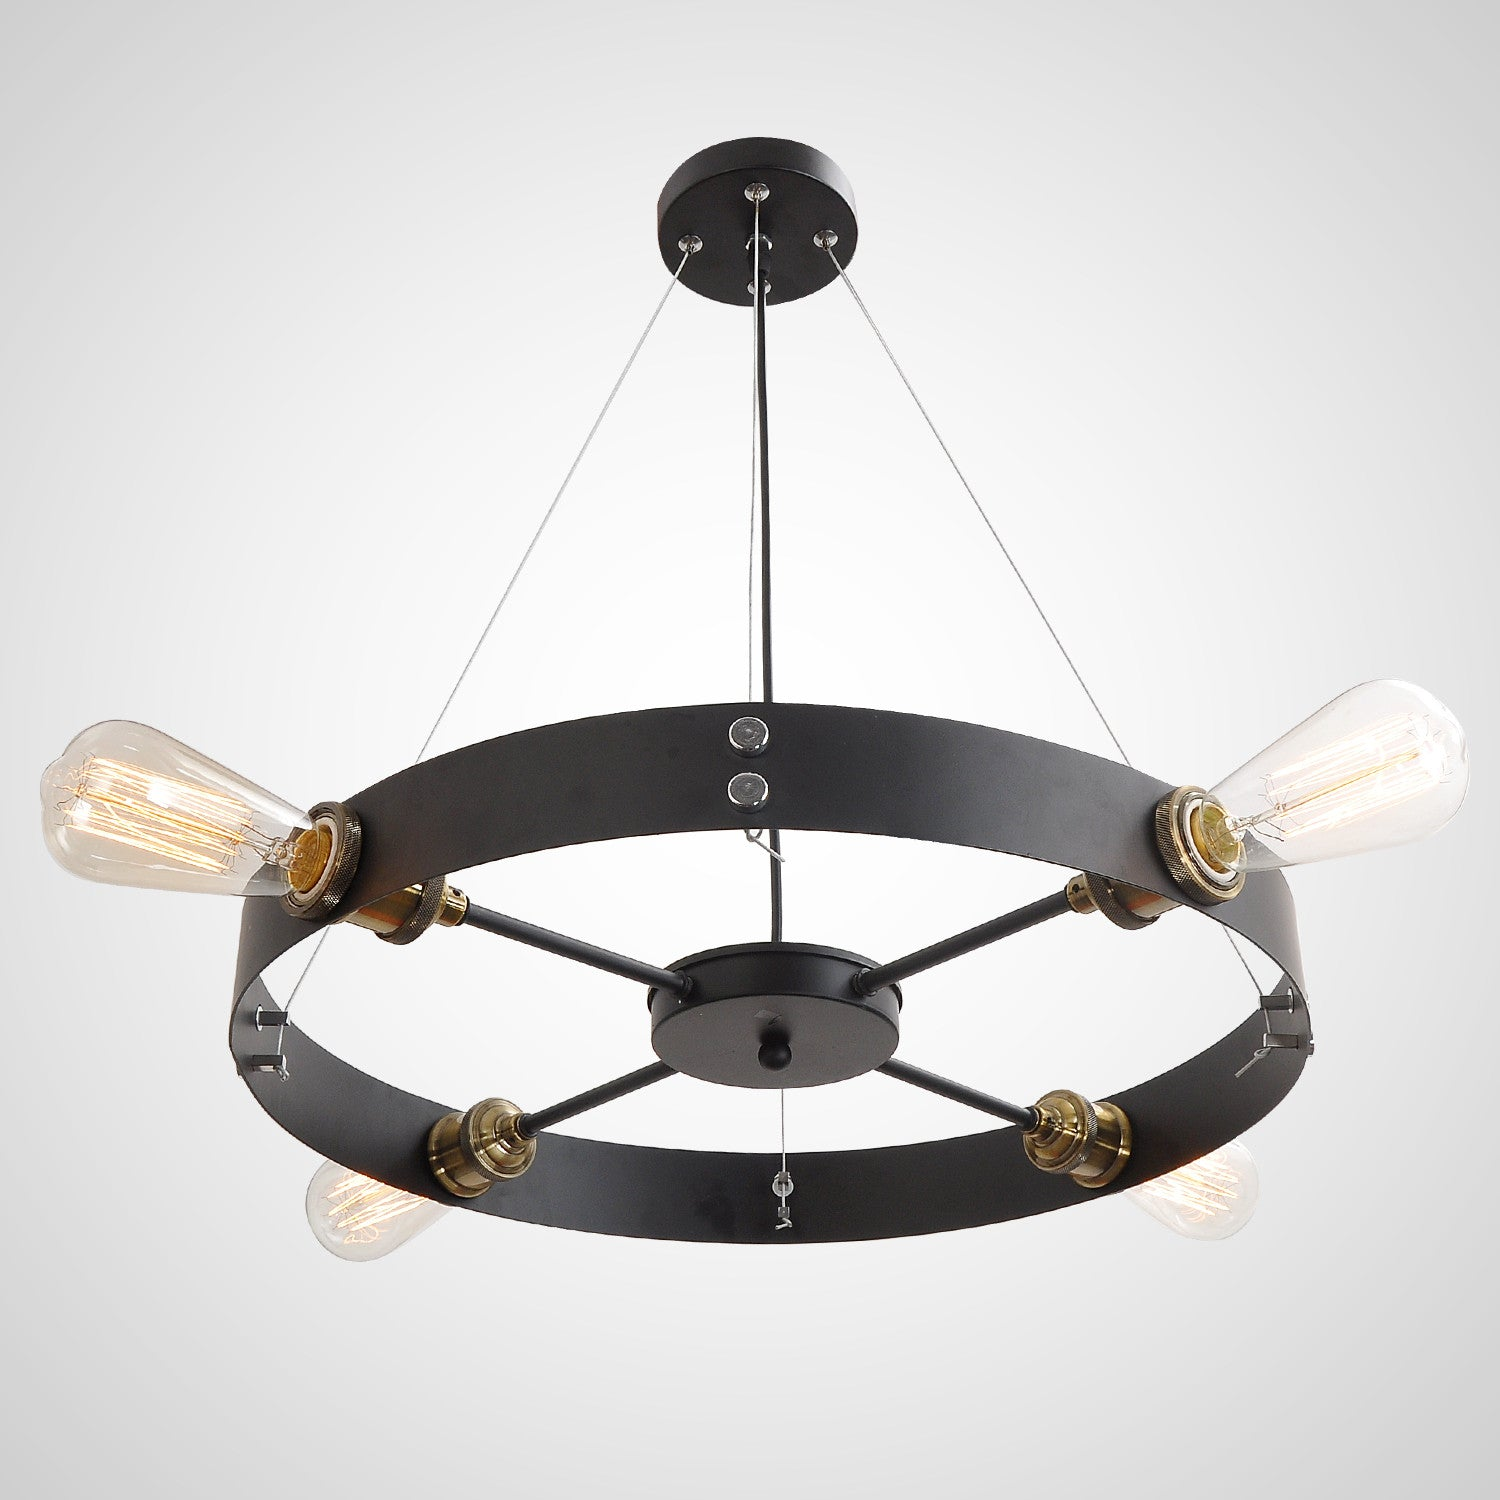 Black Round Vintage Barn Metal Hanging Ceiling Pendant Lighting With 4 Lights